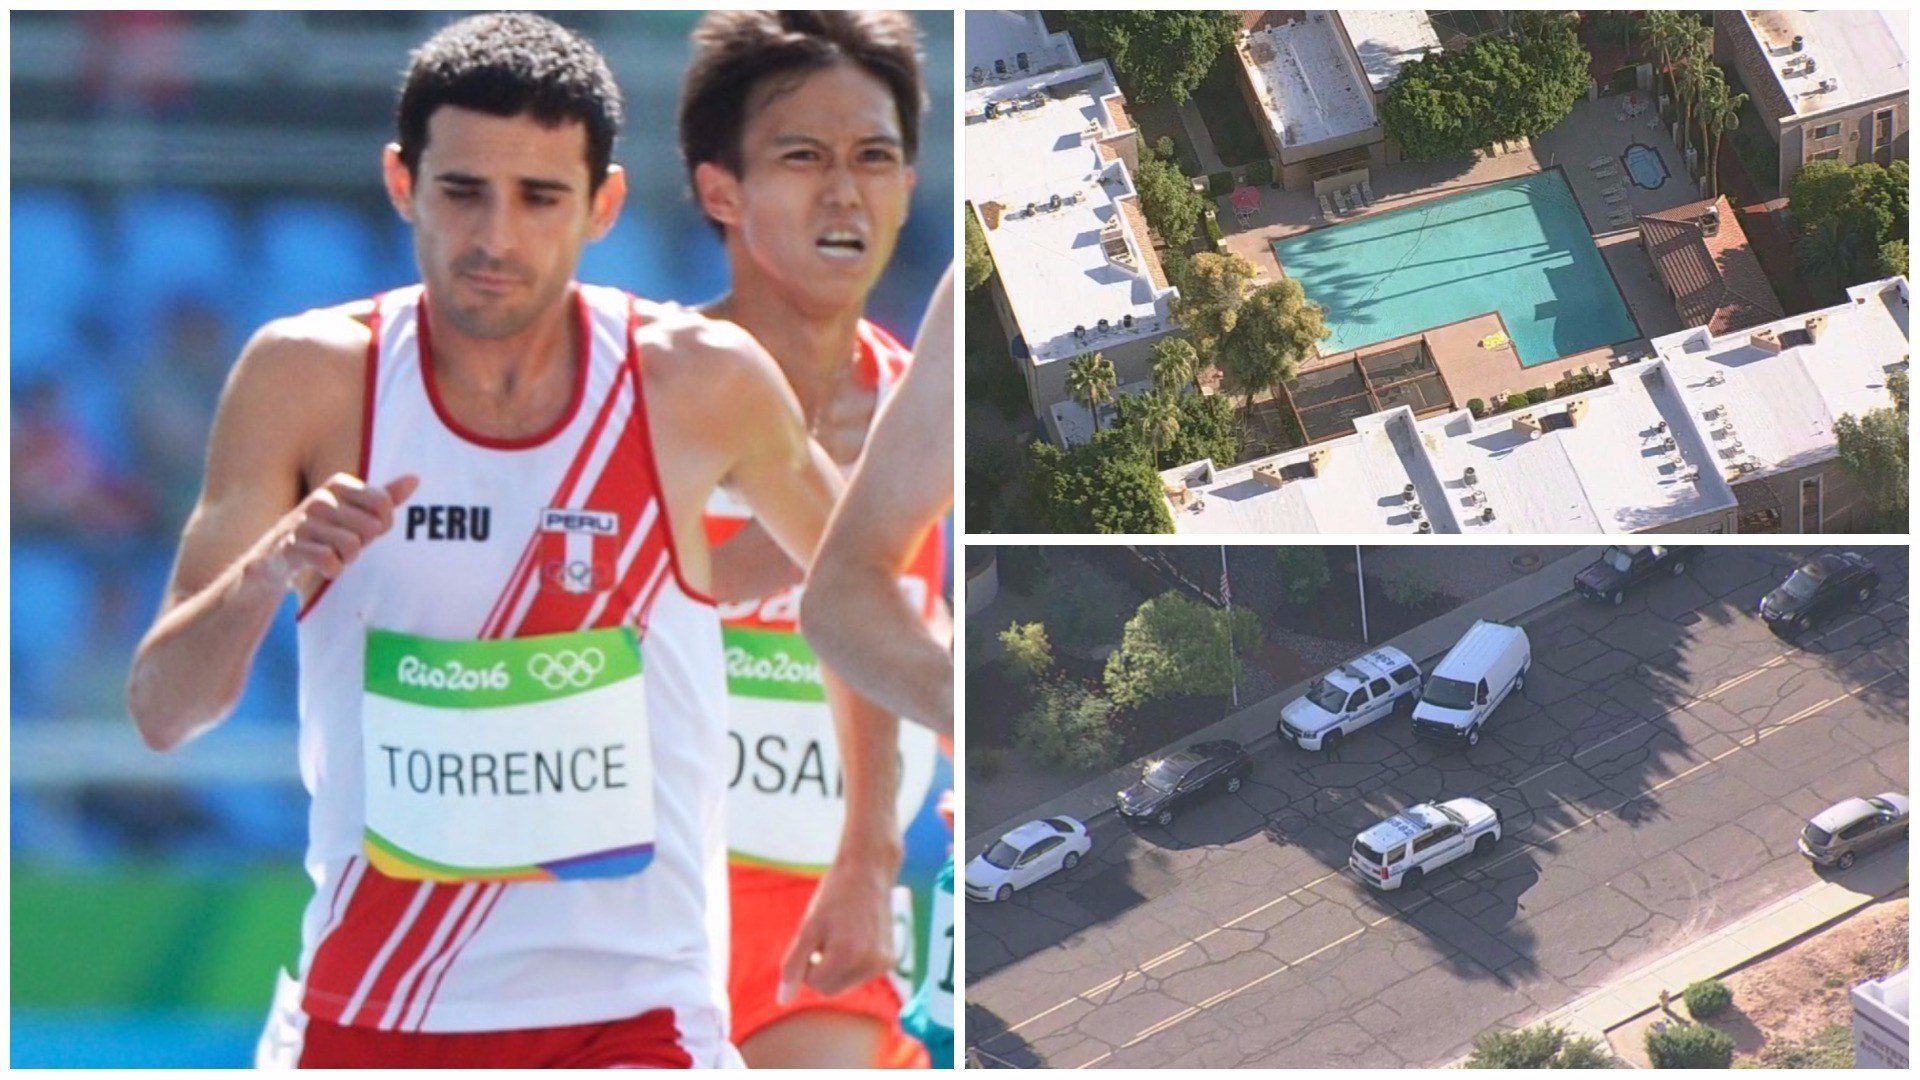 Scottsdale Police: Olympic runner David Torrance dead from drowning